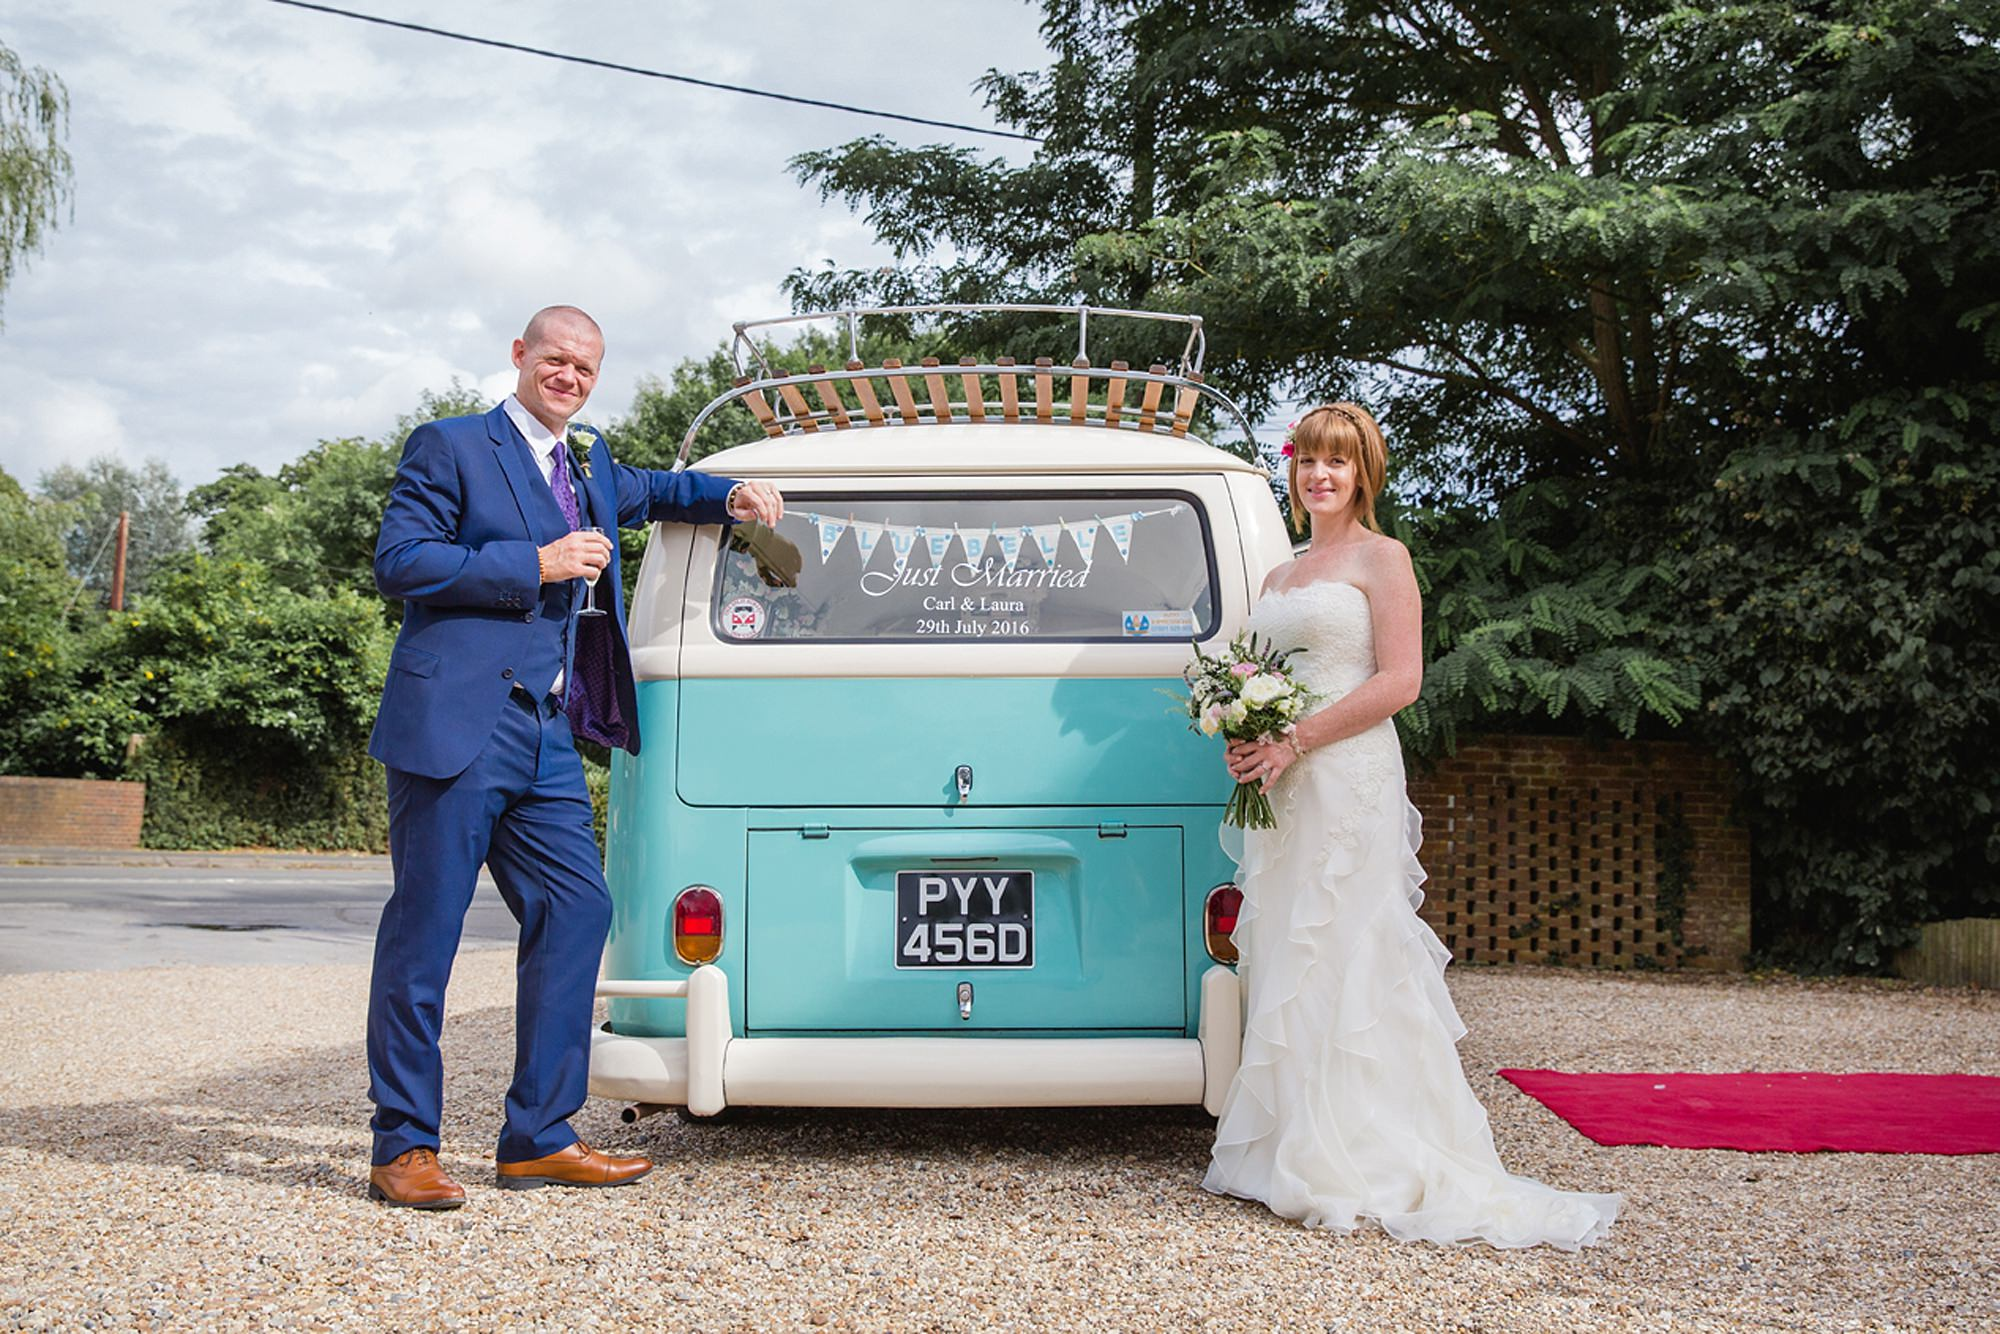 Mill House hotel wedding photography groom and bride with vintage camper van